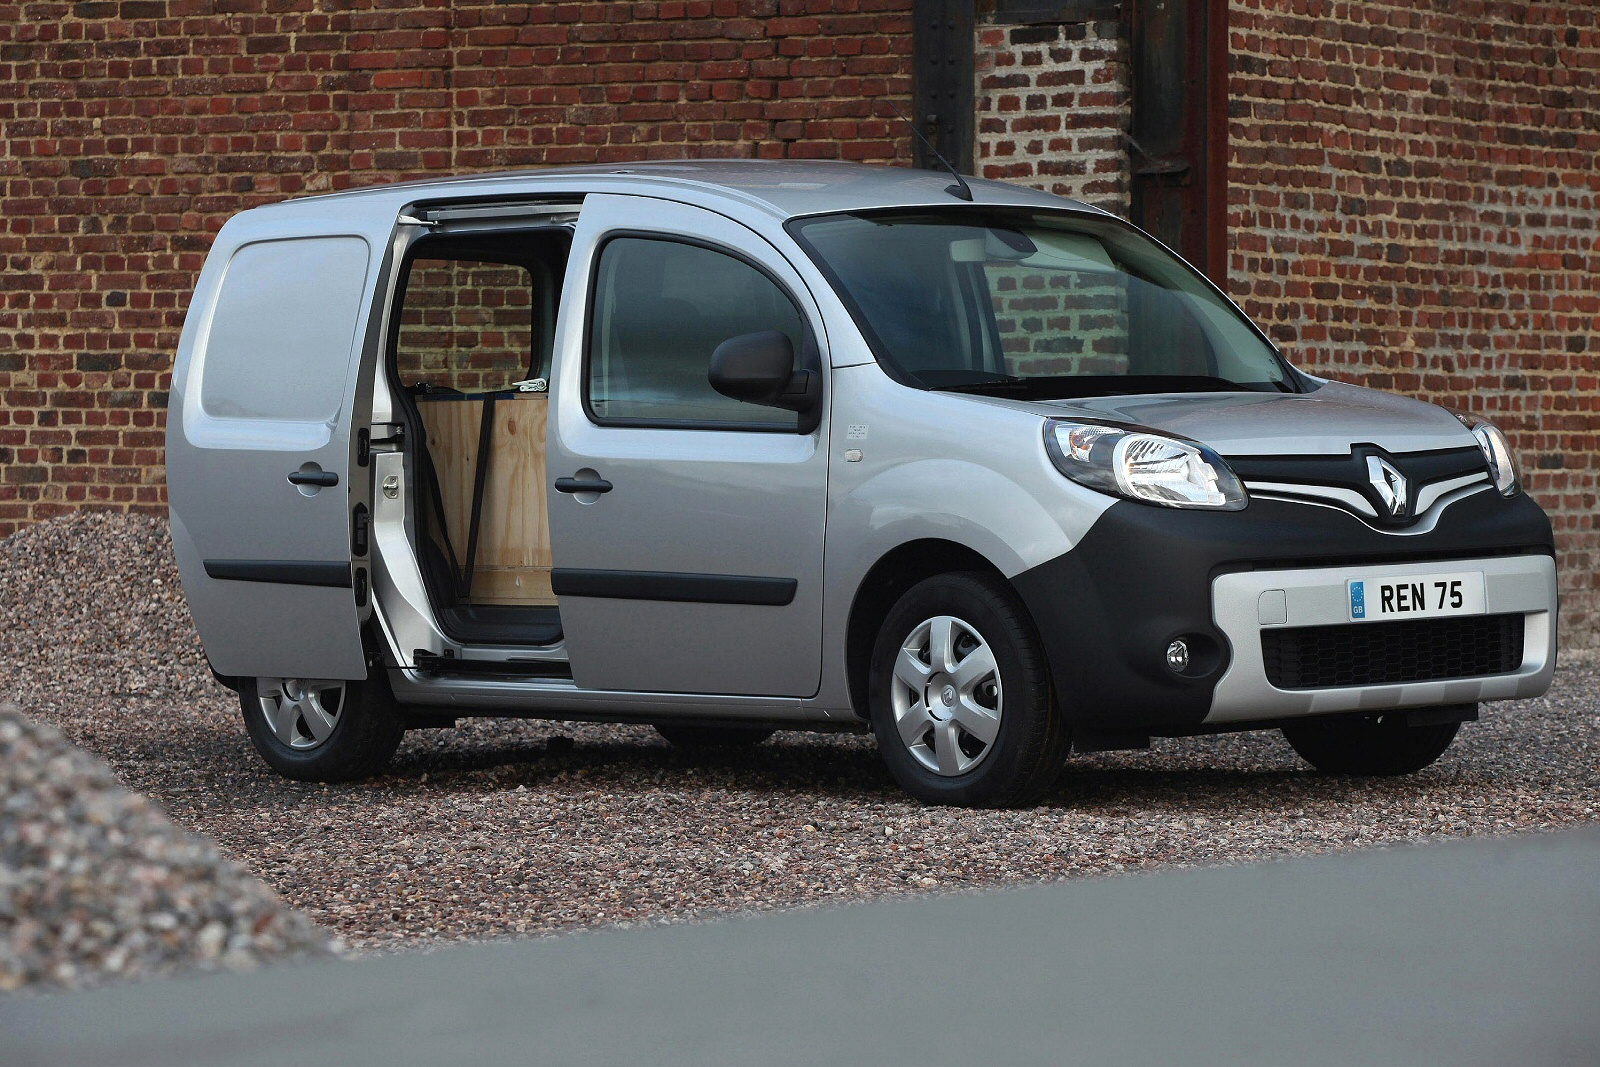 new renault kangoo diesel ml19 energy dci 90 business van euro 6 for sale bristol street. Black Bedroom Furniture Sets. Home Design Ideas